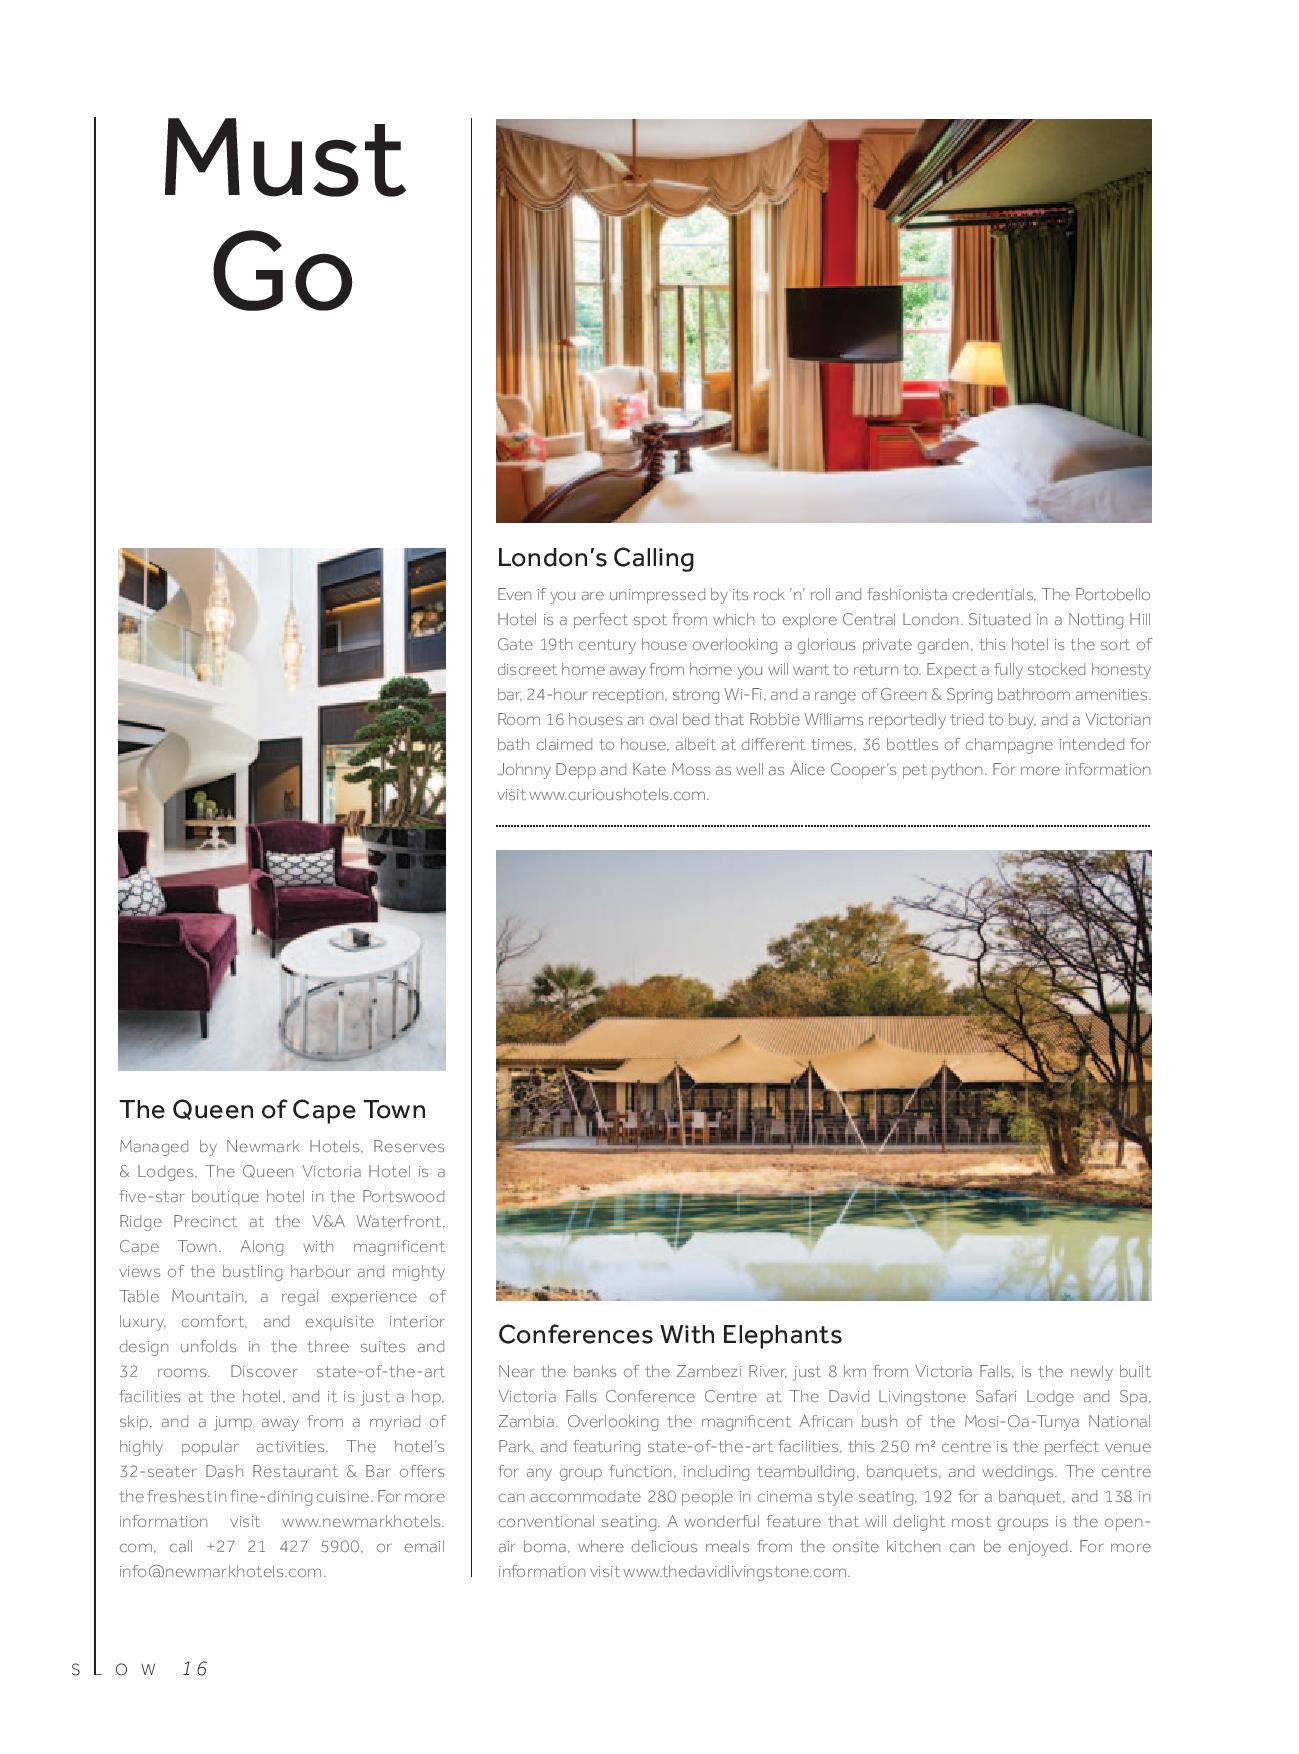 Wired Communications - Newmark Hotels